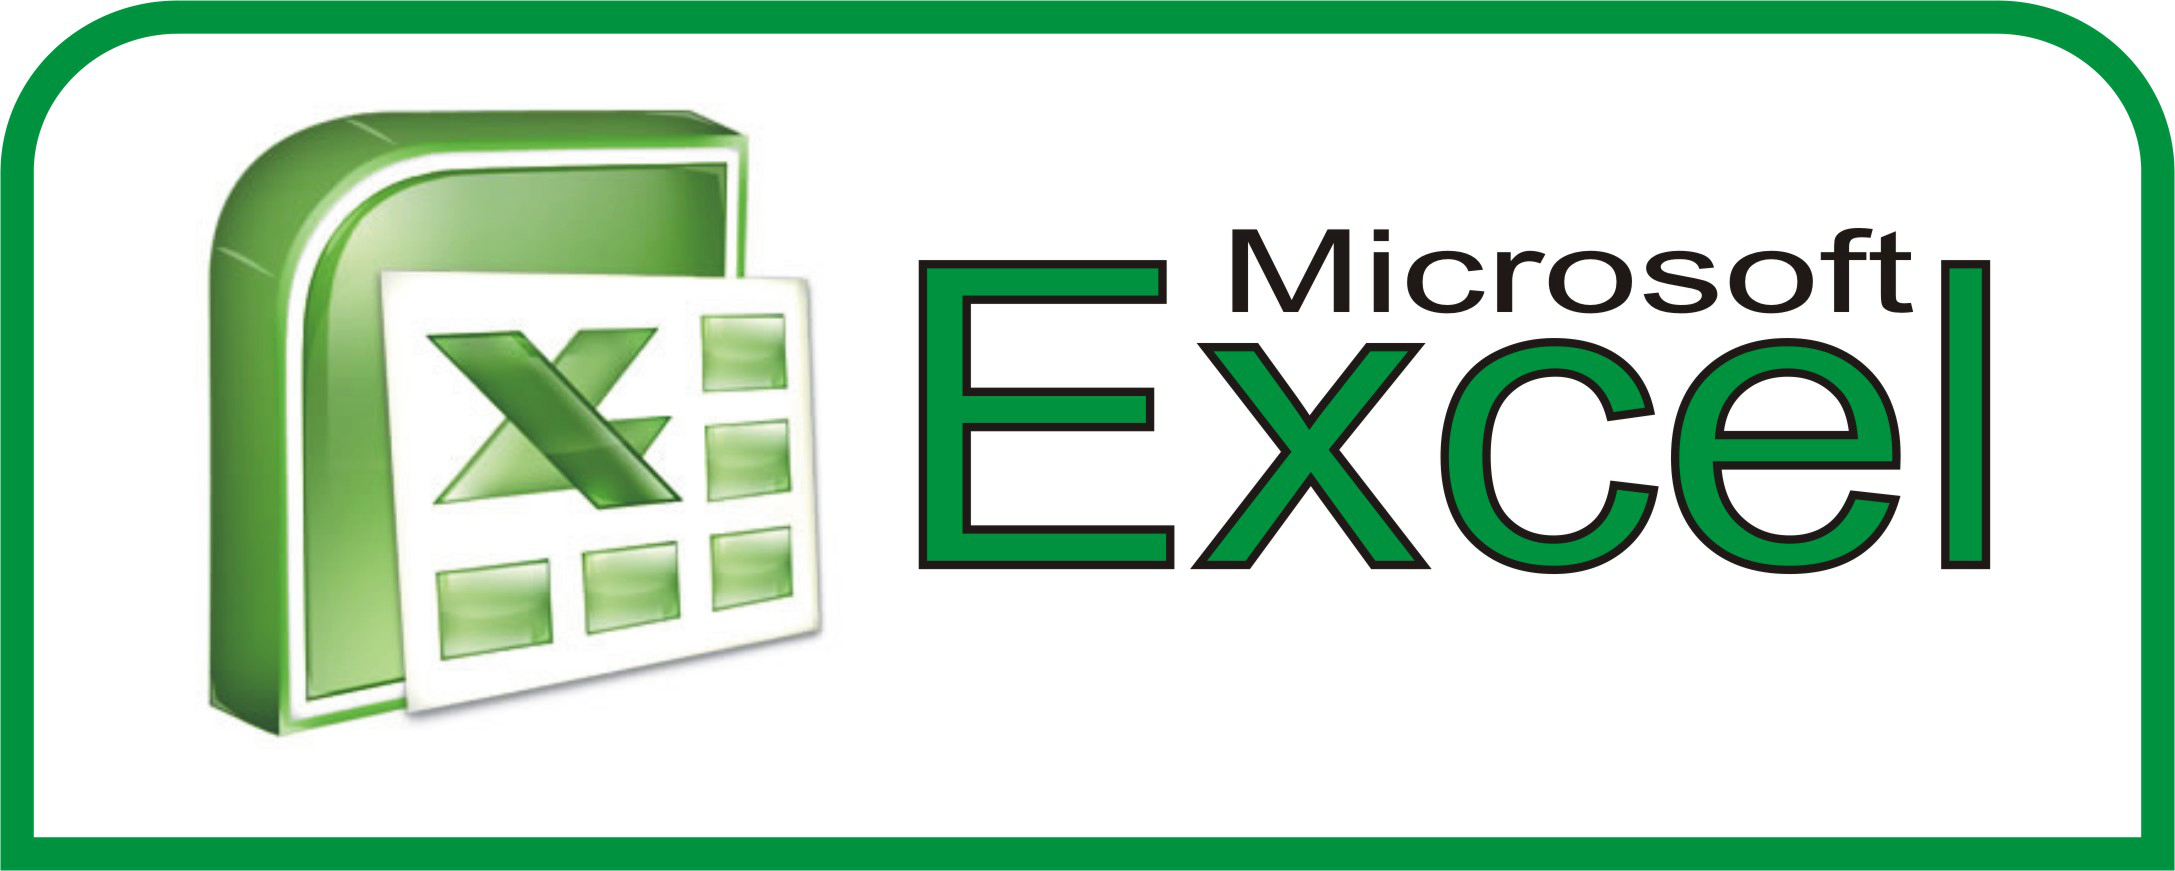 Ediblewildsus  Pleasant  Excel Shortcuts You Probably Didnt Know About  Techdissected With Fair Summarizing Data In Excel Besides Orientation In Excel Furthermore Excel Remove White Space With Amusing Merge Excel Worksheets Into One Master Worksheet Also Excel Html Format In Addition Import Pdf Table Into Excel And Excel Decimal To Time As Well As Counting Number Of Cells In Excel Additionally Tools In Excel  From Techdissectedcom With Ediblewildsus  Fair  Excel Shortcuts You Probably Didnt Know About  Techdissected With Amusing Summarizing Data In Excel Besides Orientation In Excel Furthermore Excel Remove White Space And Pleasant Merge Excel Worksheets Into One Master Worksheet Also Excel Html Format In Addition Import Pdf Table Into Excel From Techdissectedcom